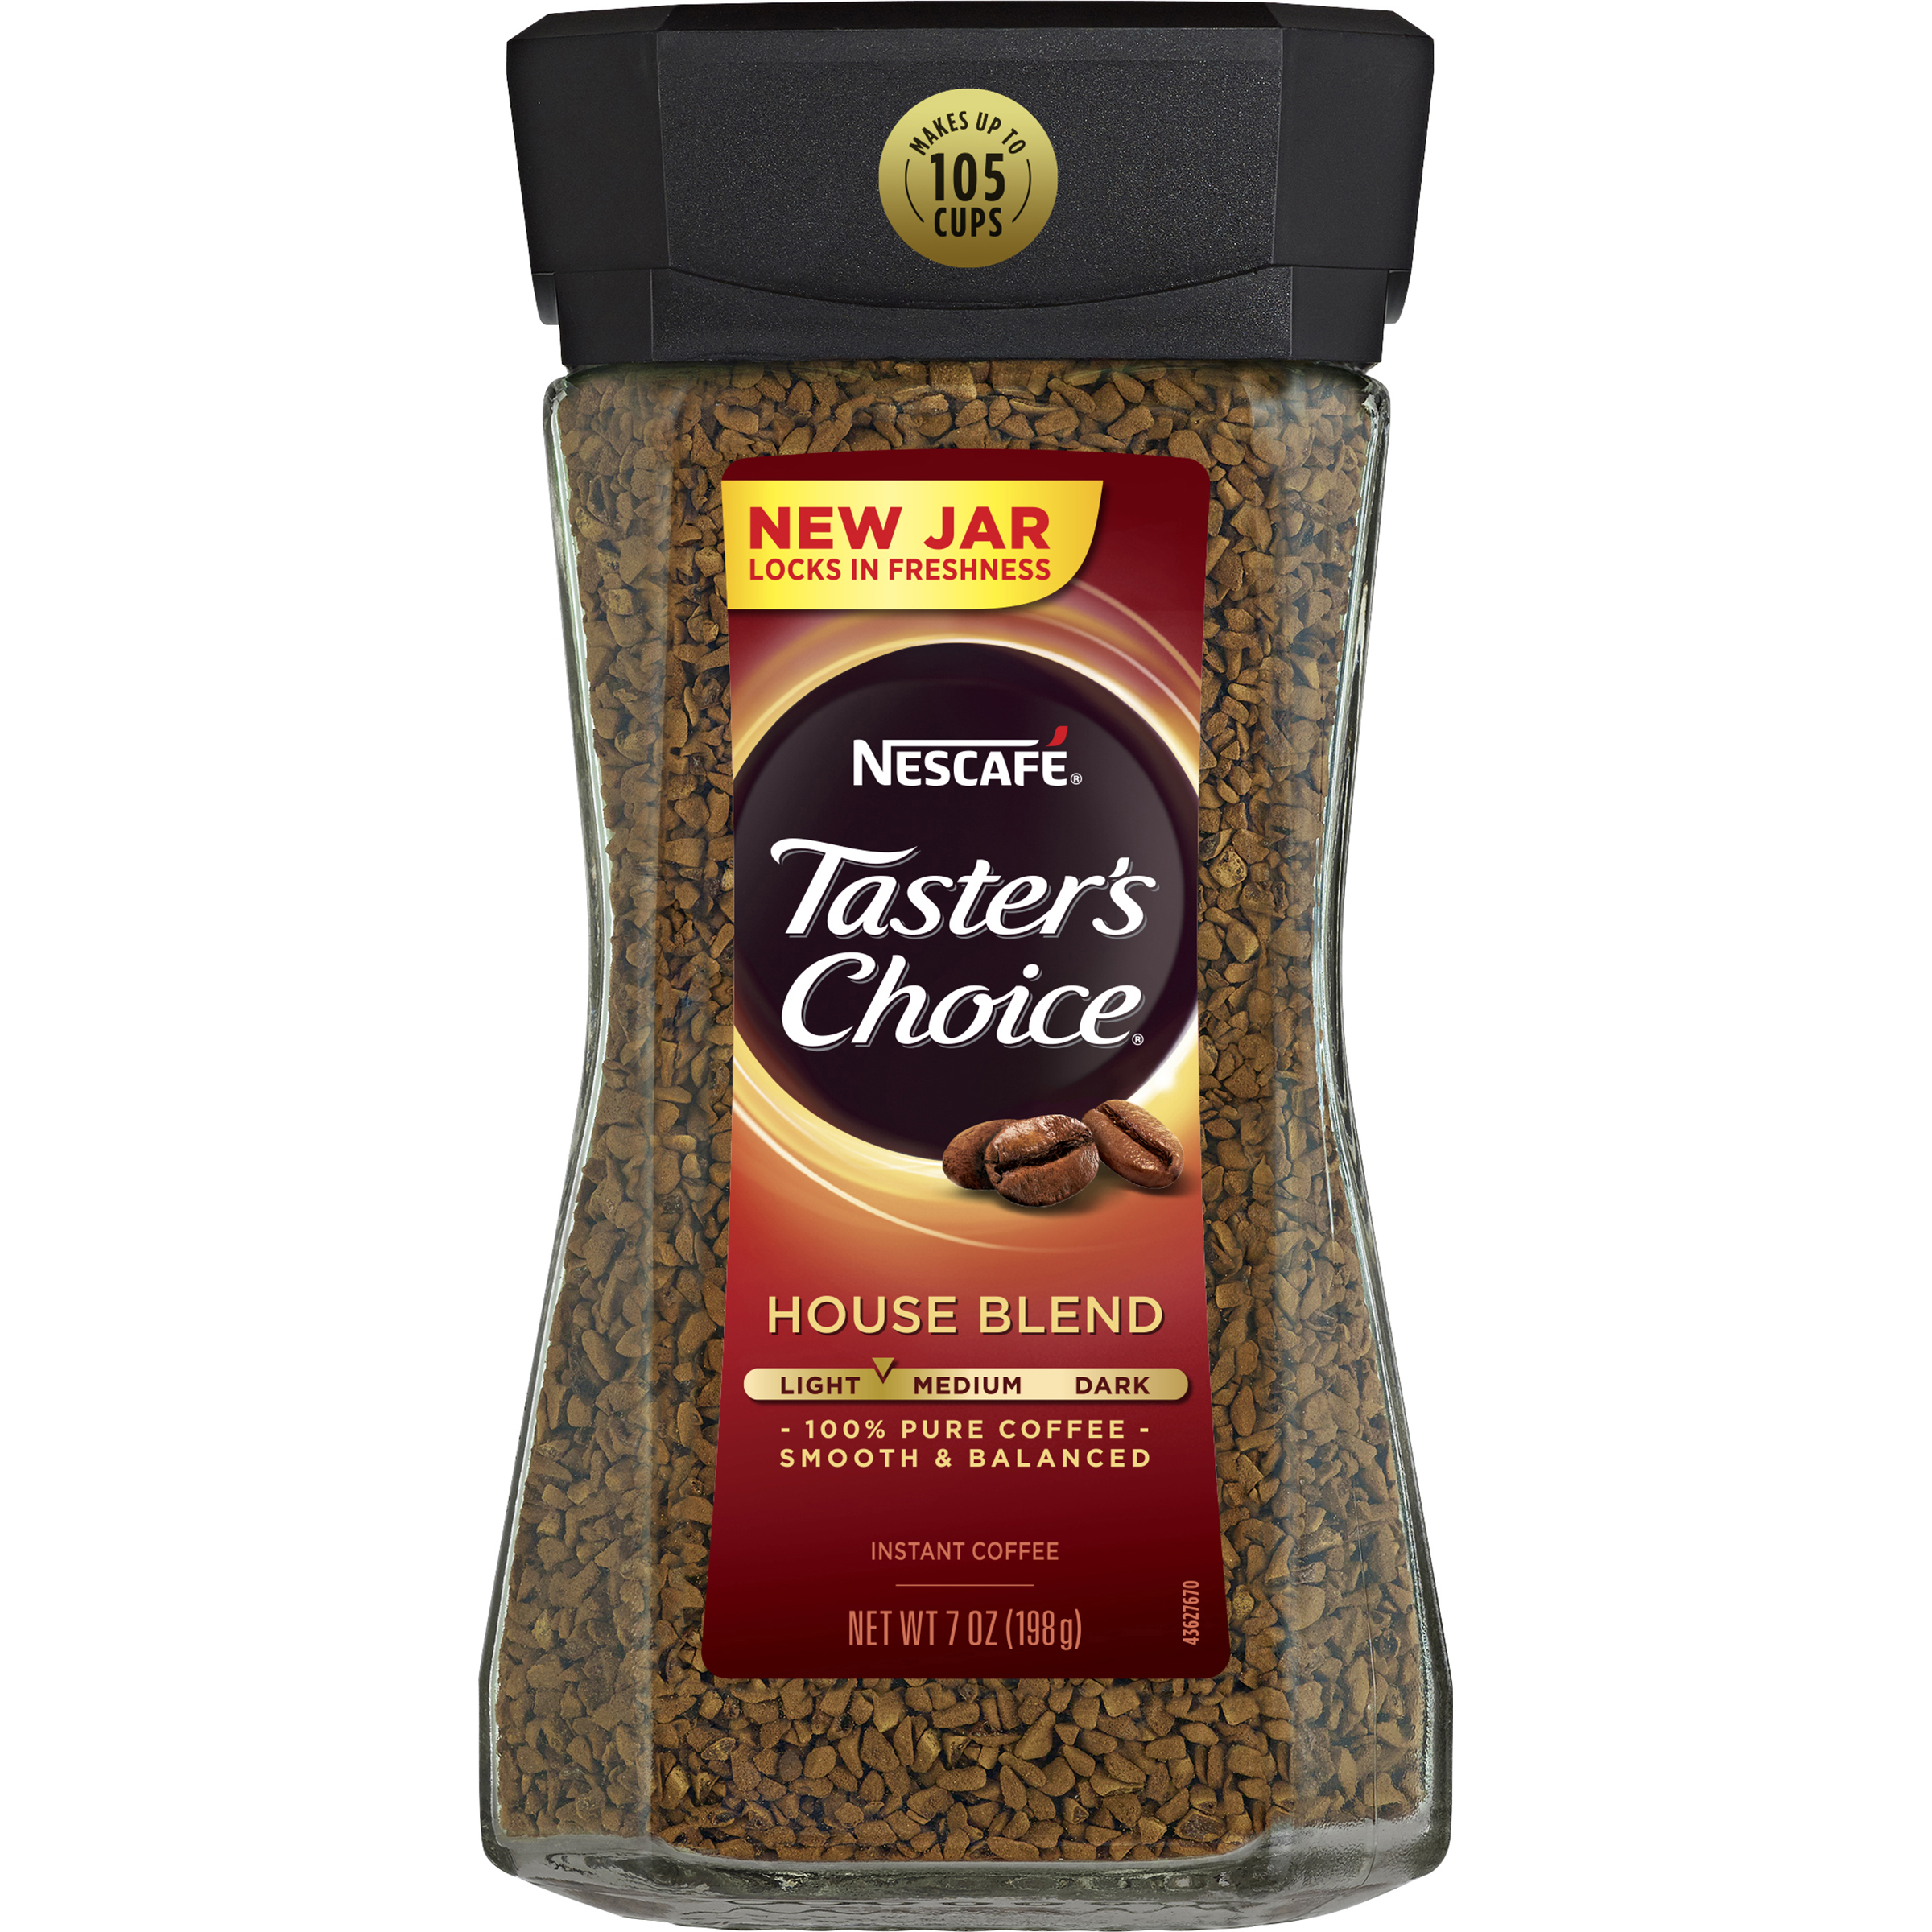 NESCAFE TASTER'S CHOICE House Blend Instant Coffee 7 oz. Jar